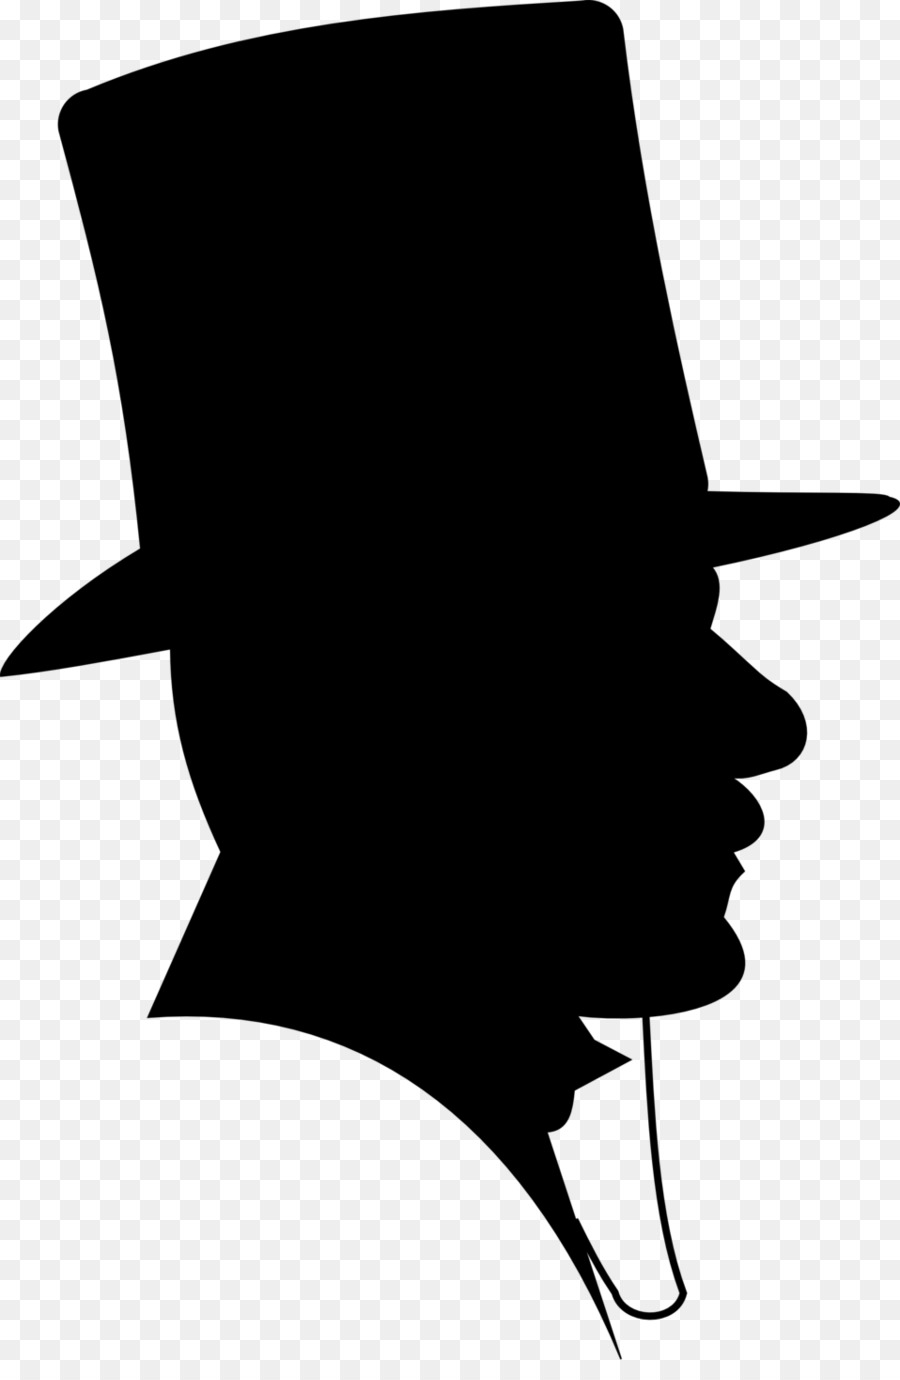 Top hat and gavel clipart clip royalty free Silhouette Top hat - silhouette man png download - 962*1920 ... clip royalty free